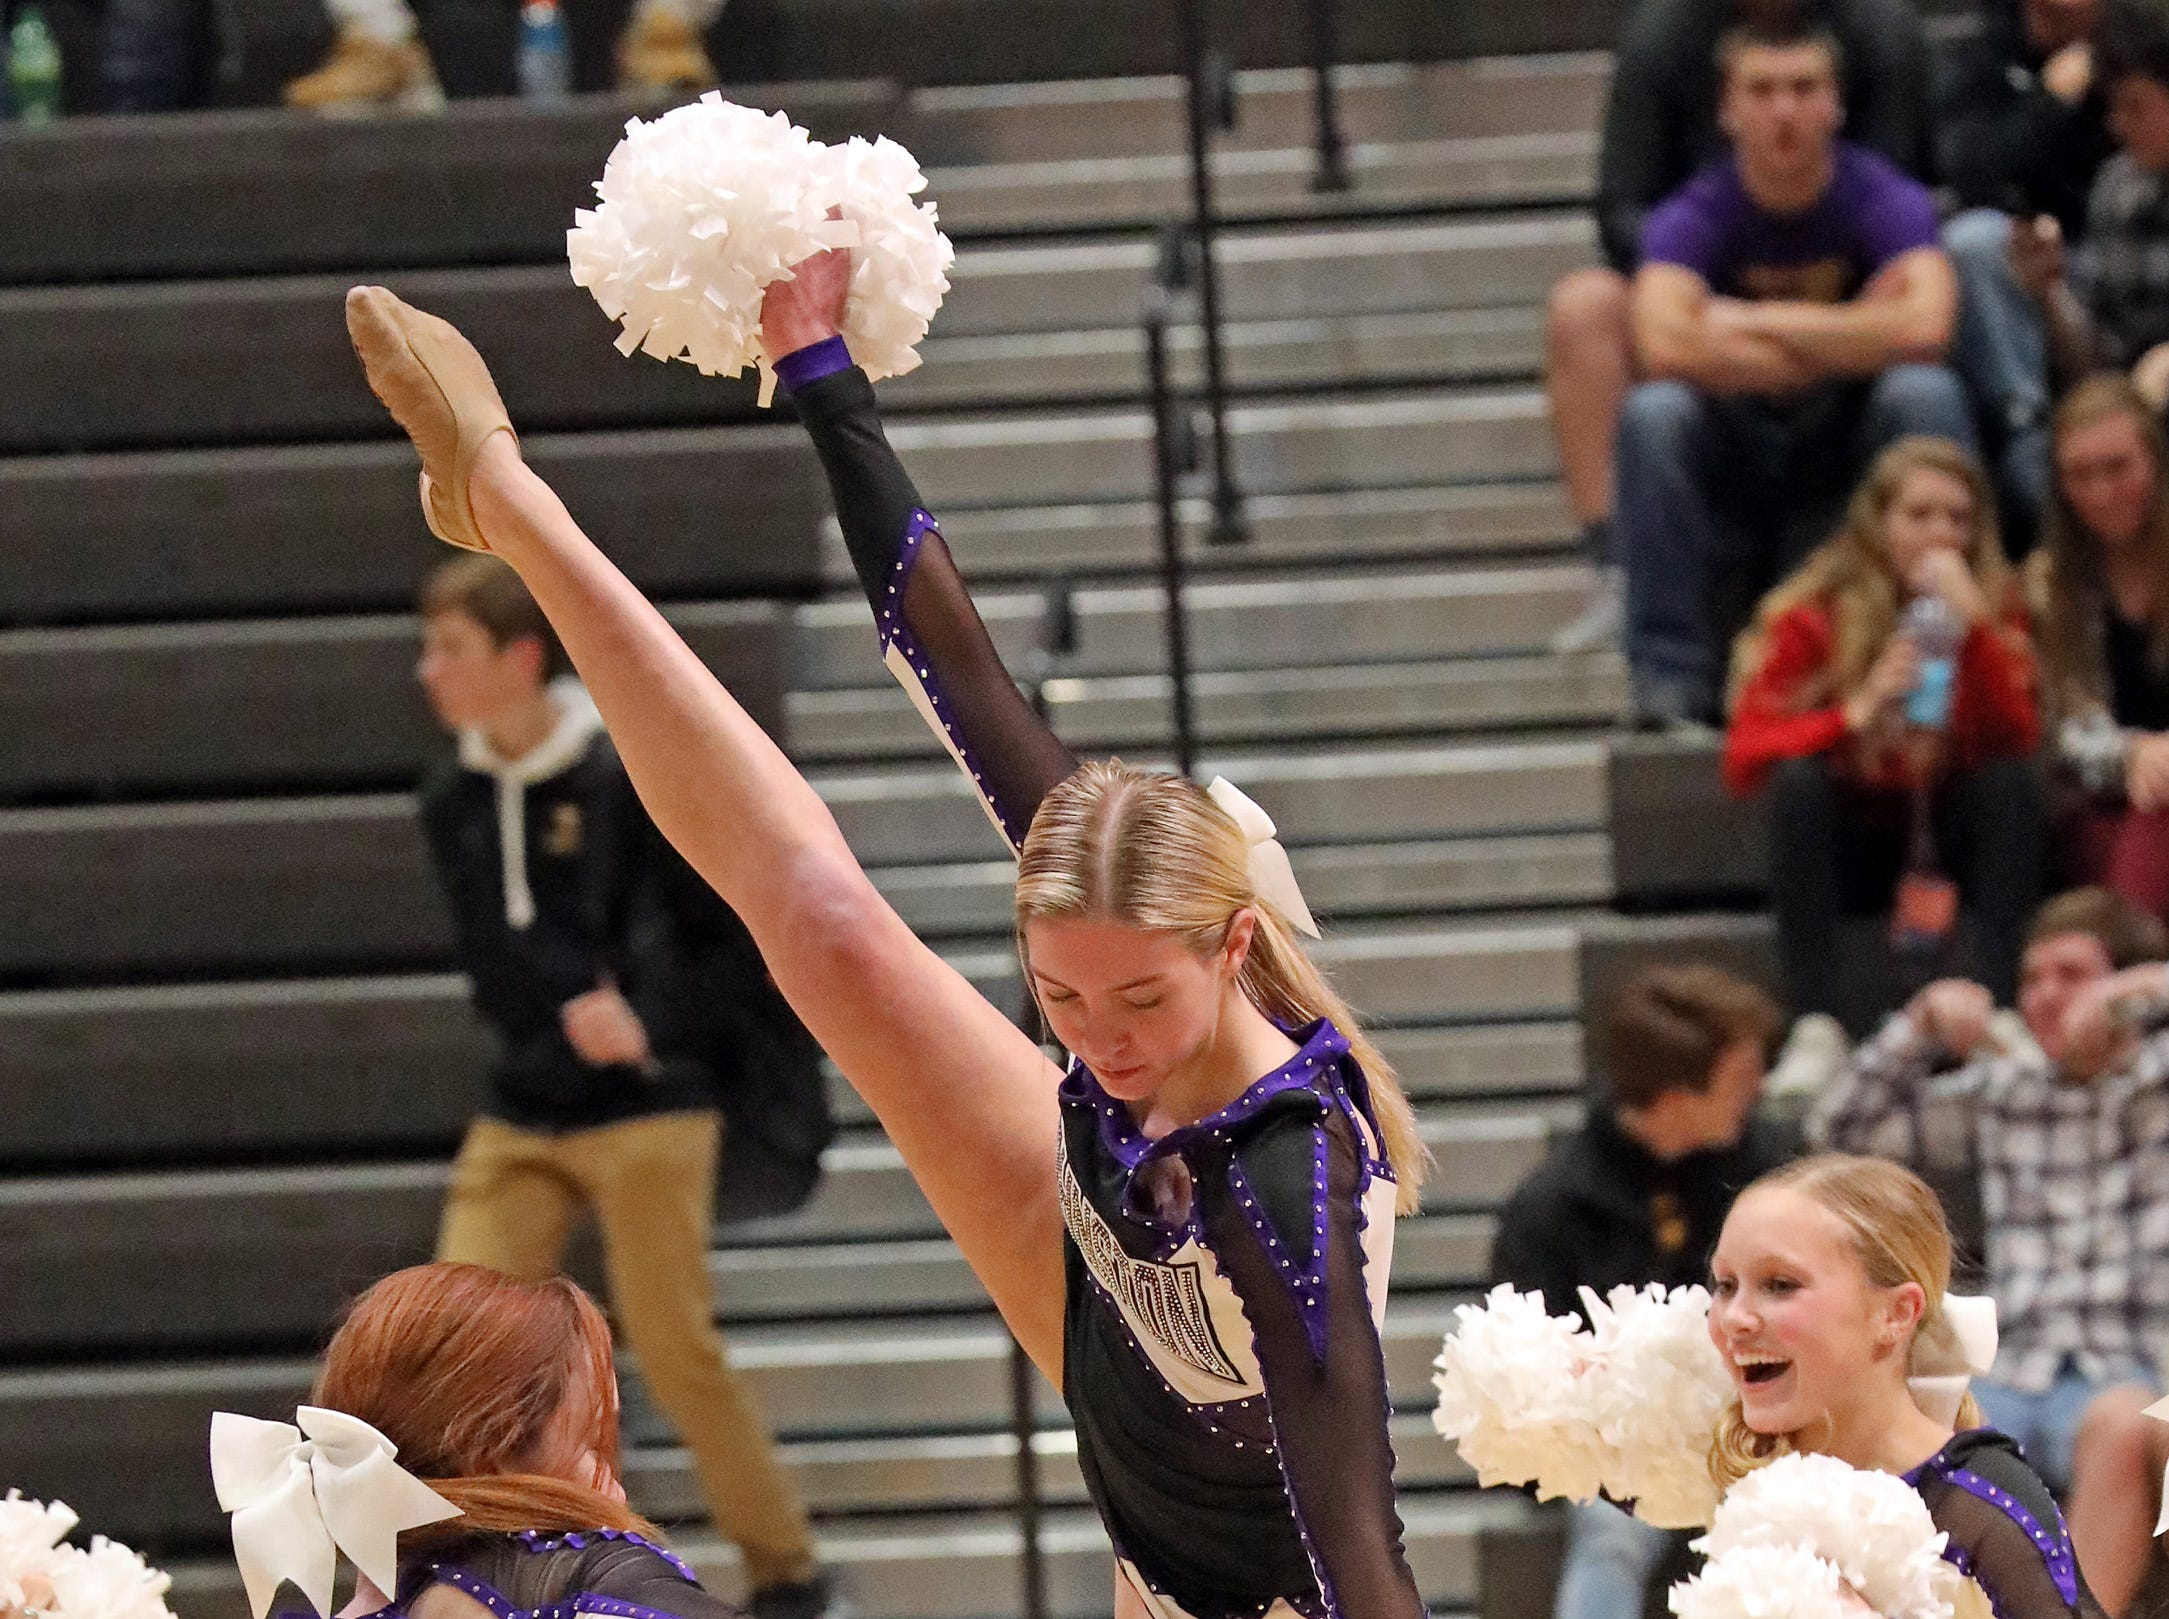 The Johnston dance team perform at half-time as the Ankeny Hawks compete against the Johnston Dragons in high school basketball on Friday, Dec. 21, 2018 at Johnston High School.